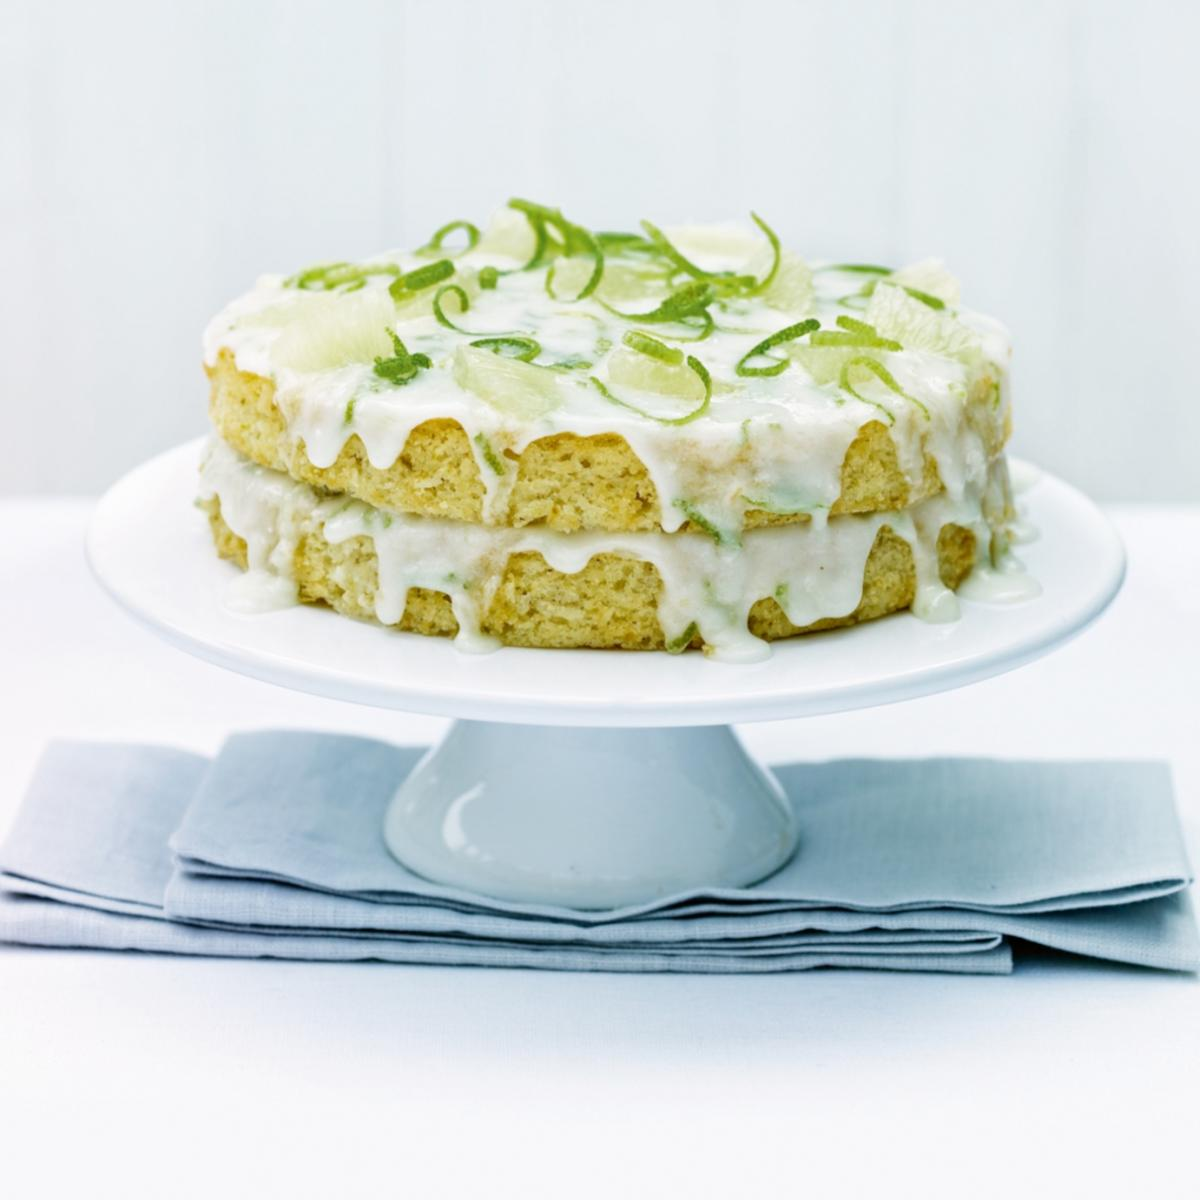 A picture of Delia's Fresh Lime and Coconut Cake recipe